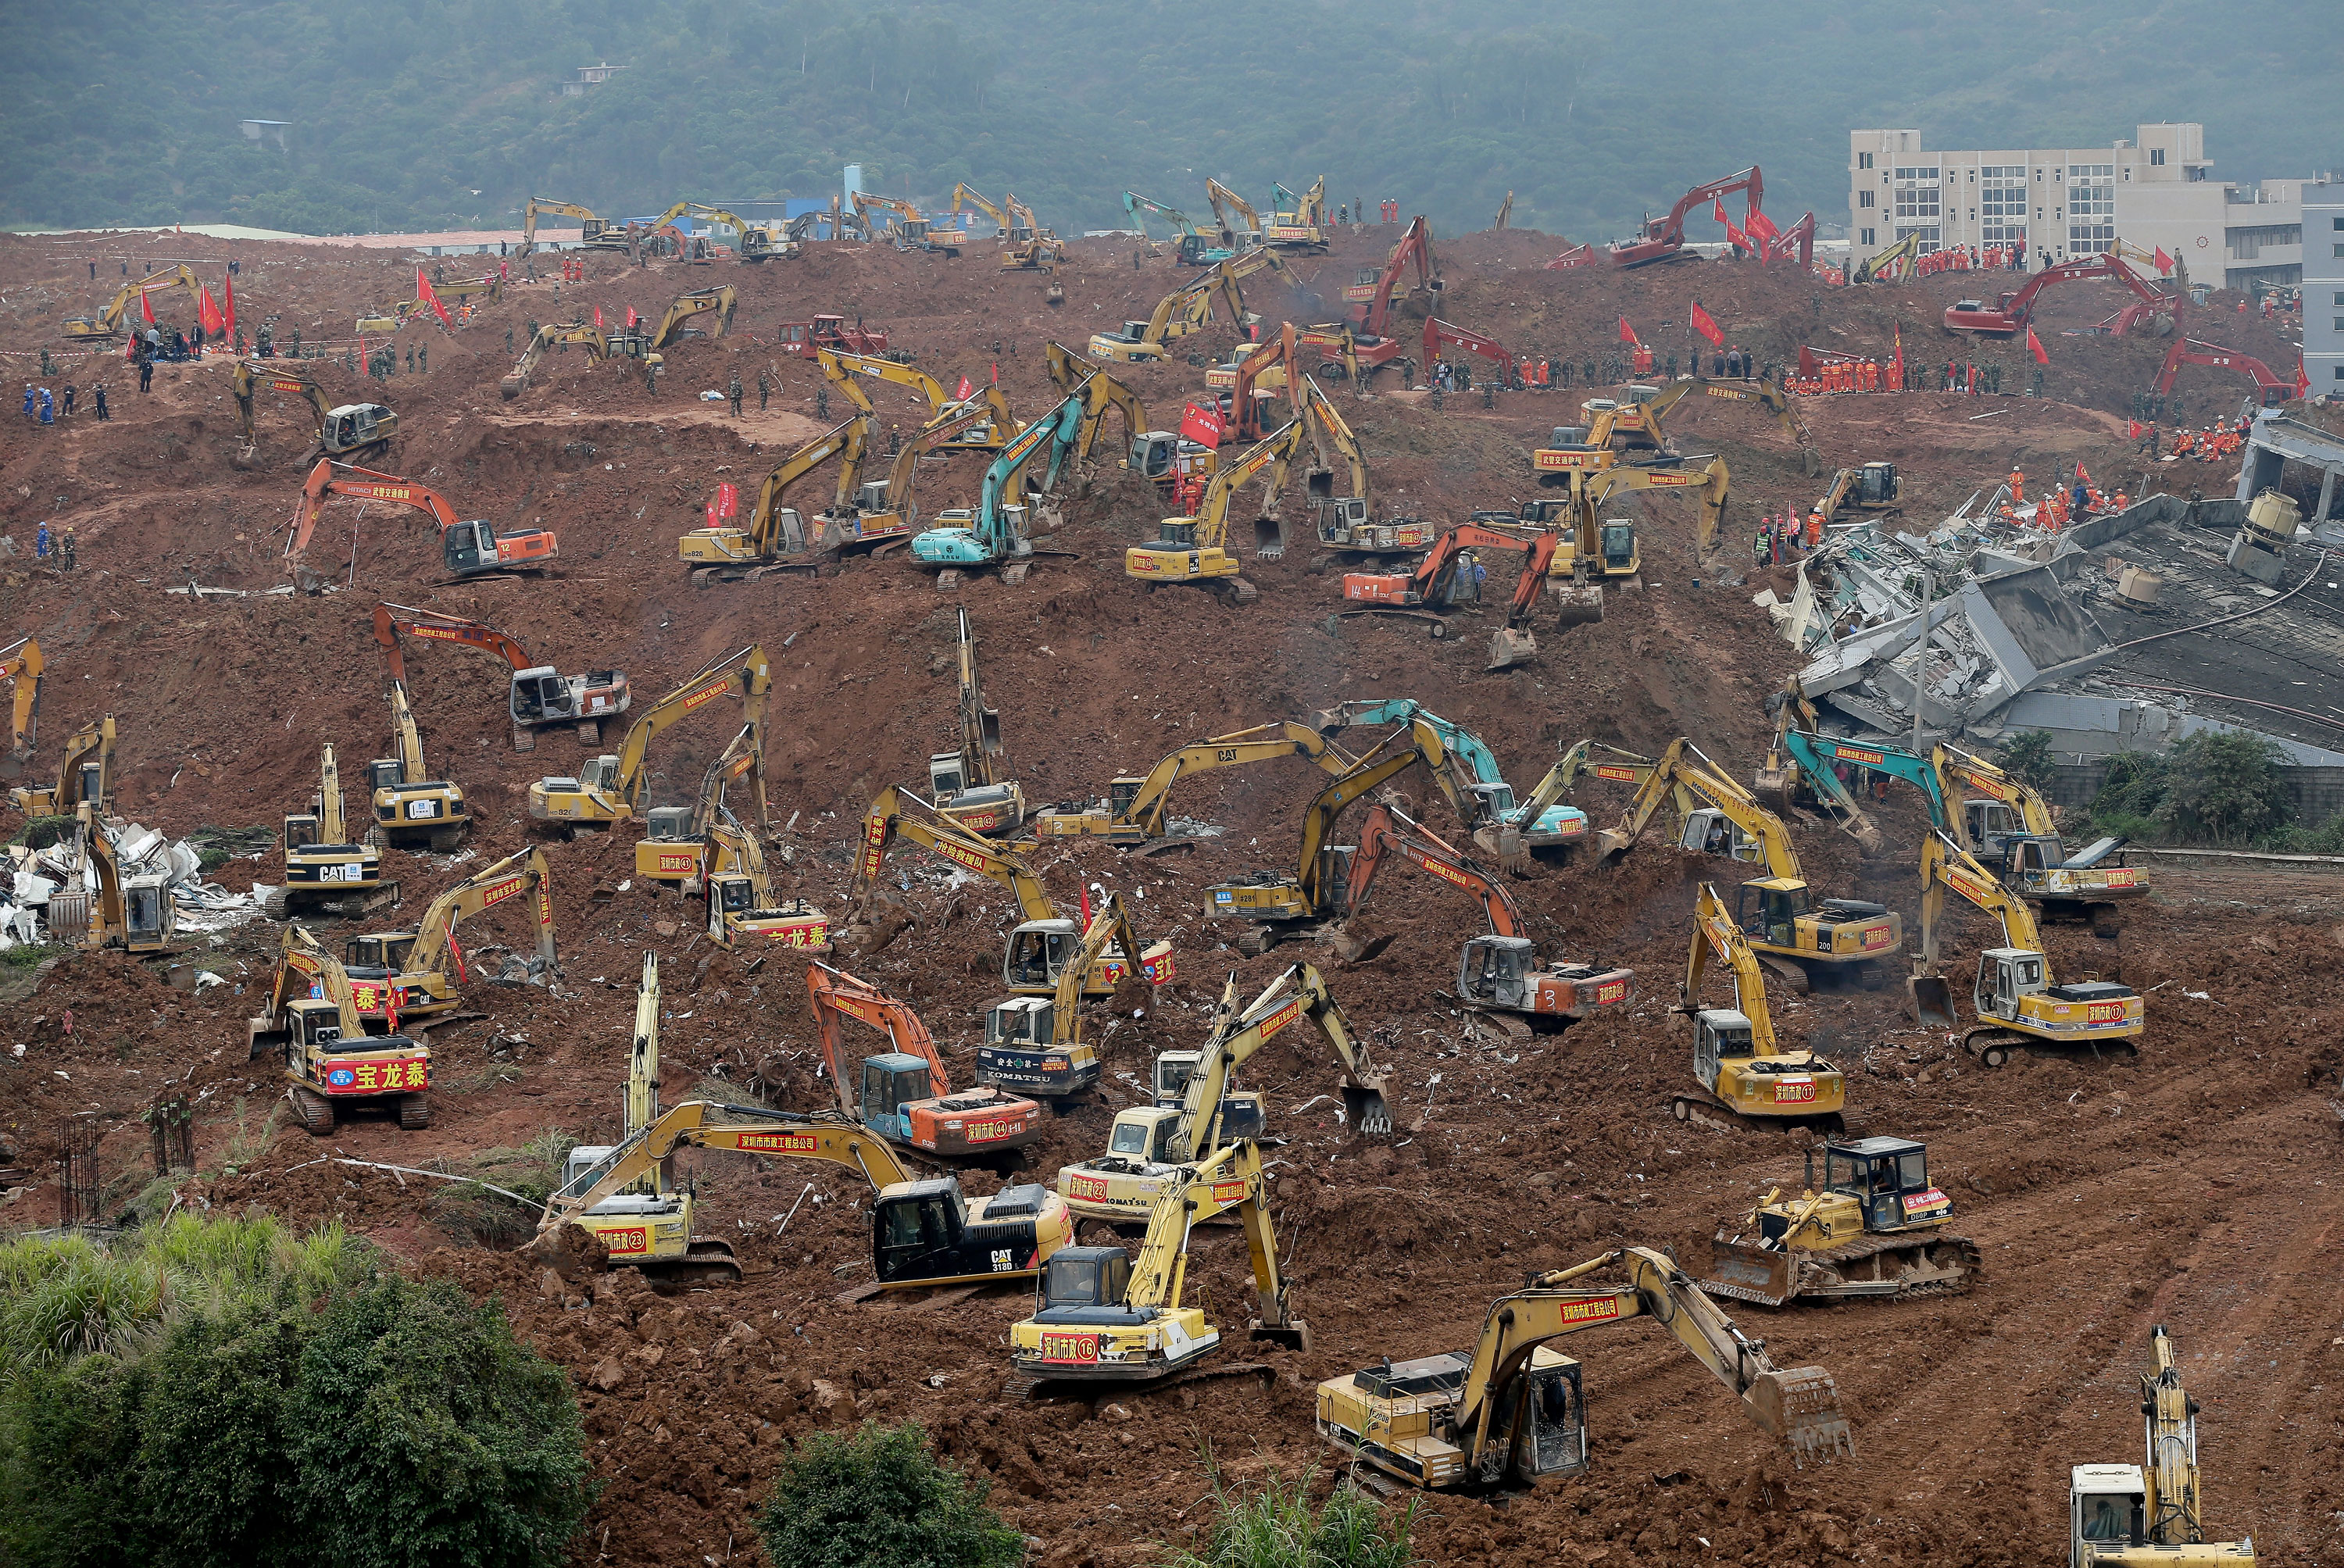 Rescuers use excavators dig the sea of soil to search for potential survivors following a landslide burying buildings at an industrial park in Shenzhen, in south China's Guangdong province [Andy Wong/AP]